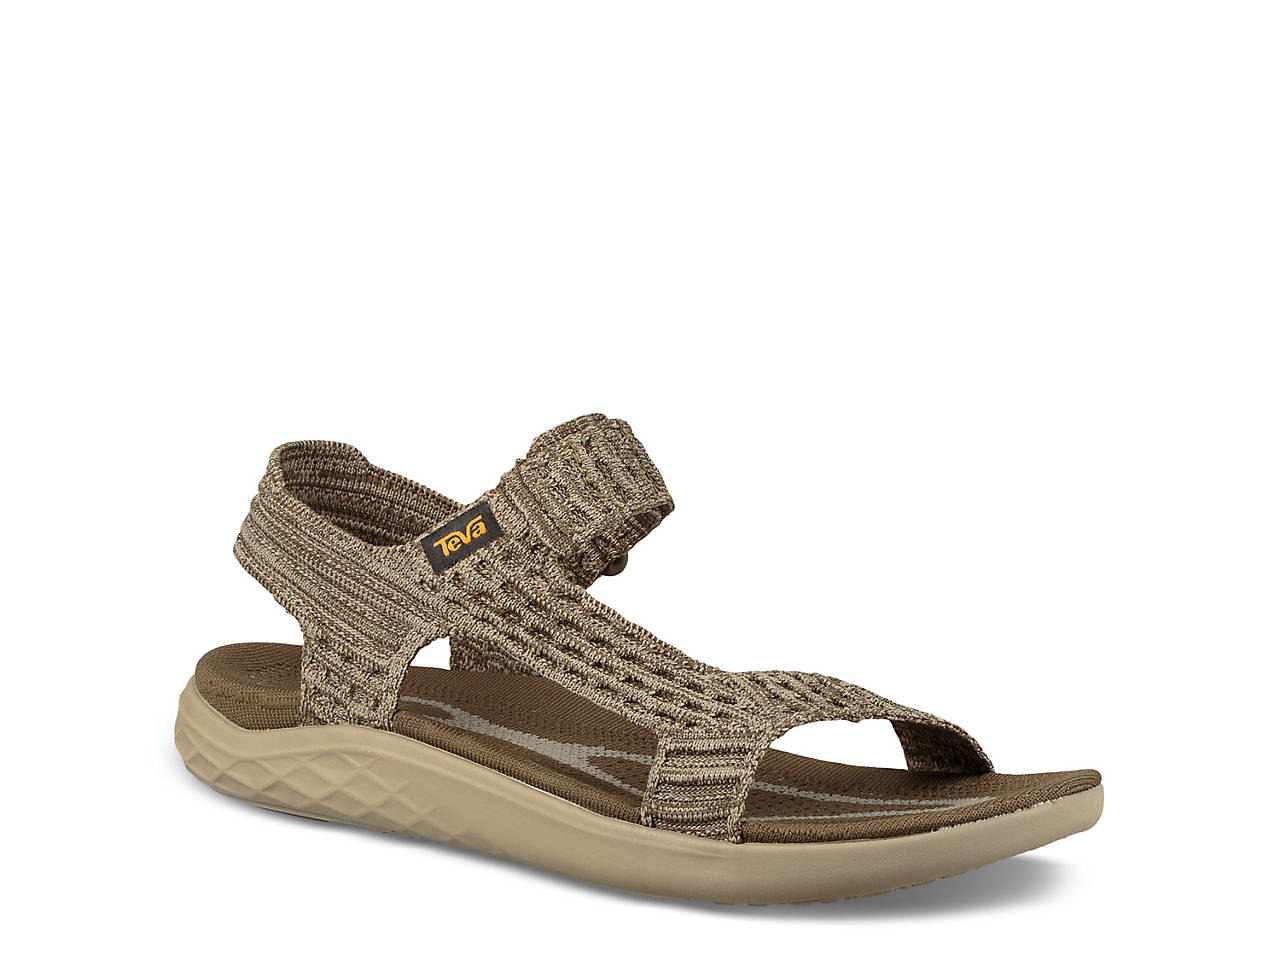 aad3de4ced4f Teva Terra Float 2 Sandal Women s Shoes